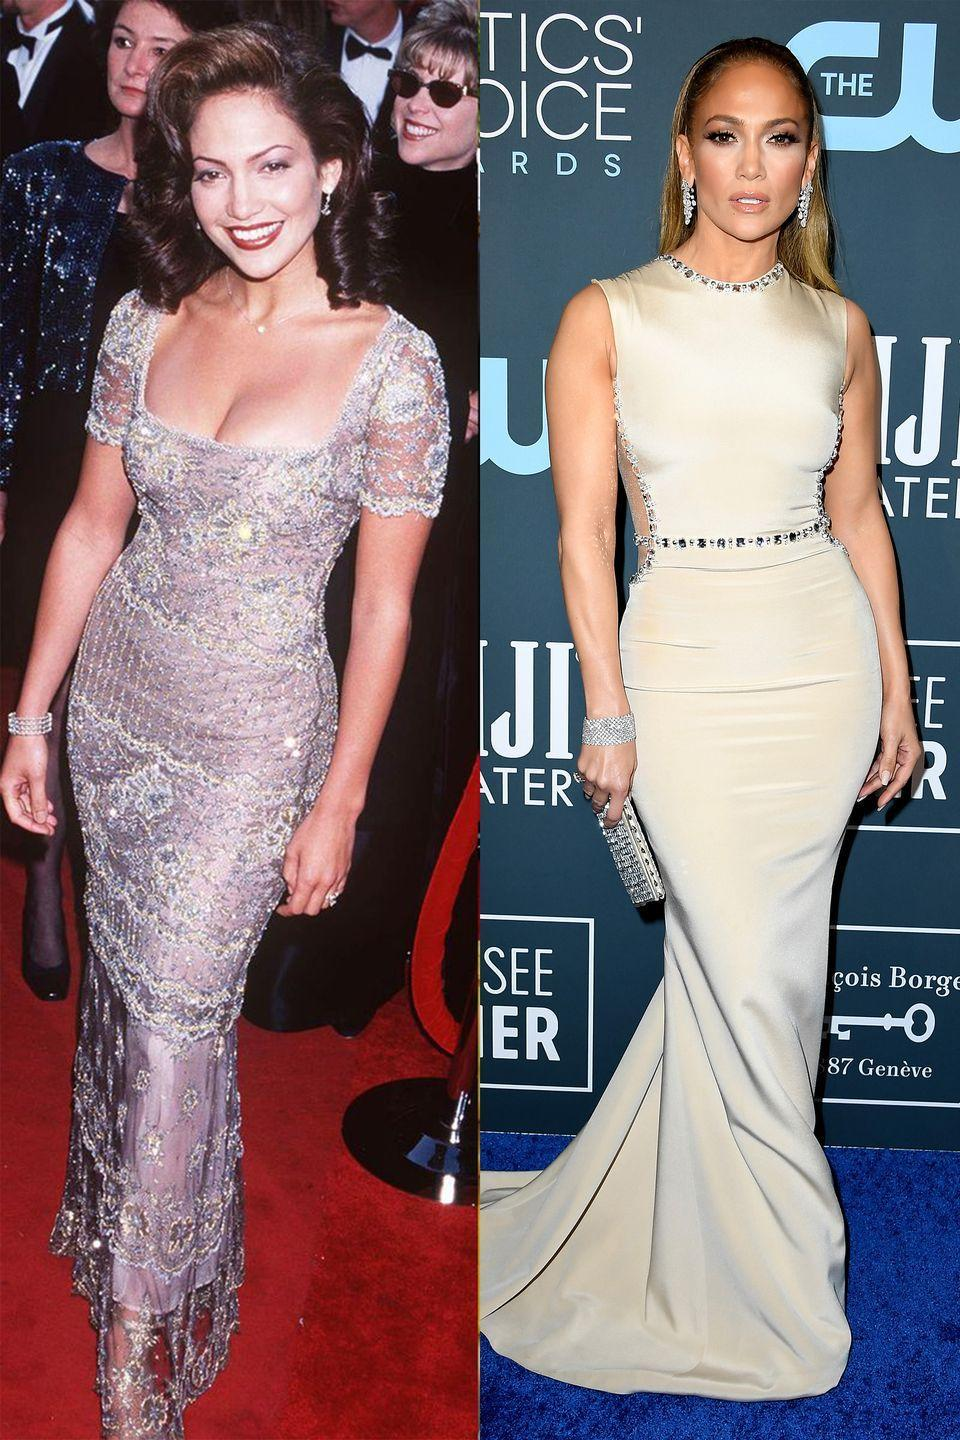 <p>We would never expect anything less than a glam form-fitting stunner from J.Lo.</p>